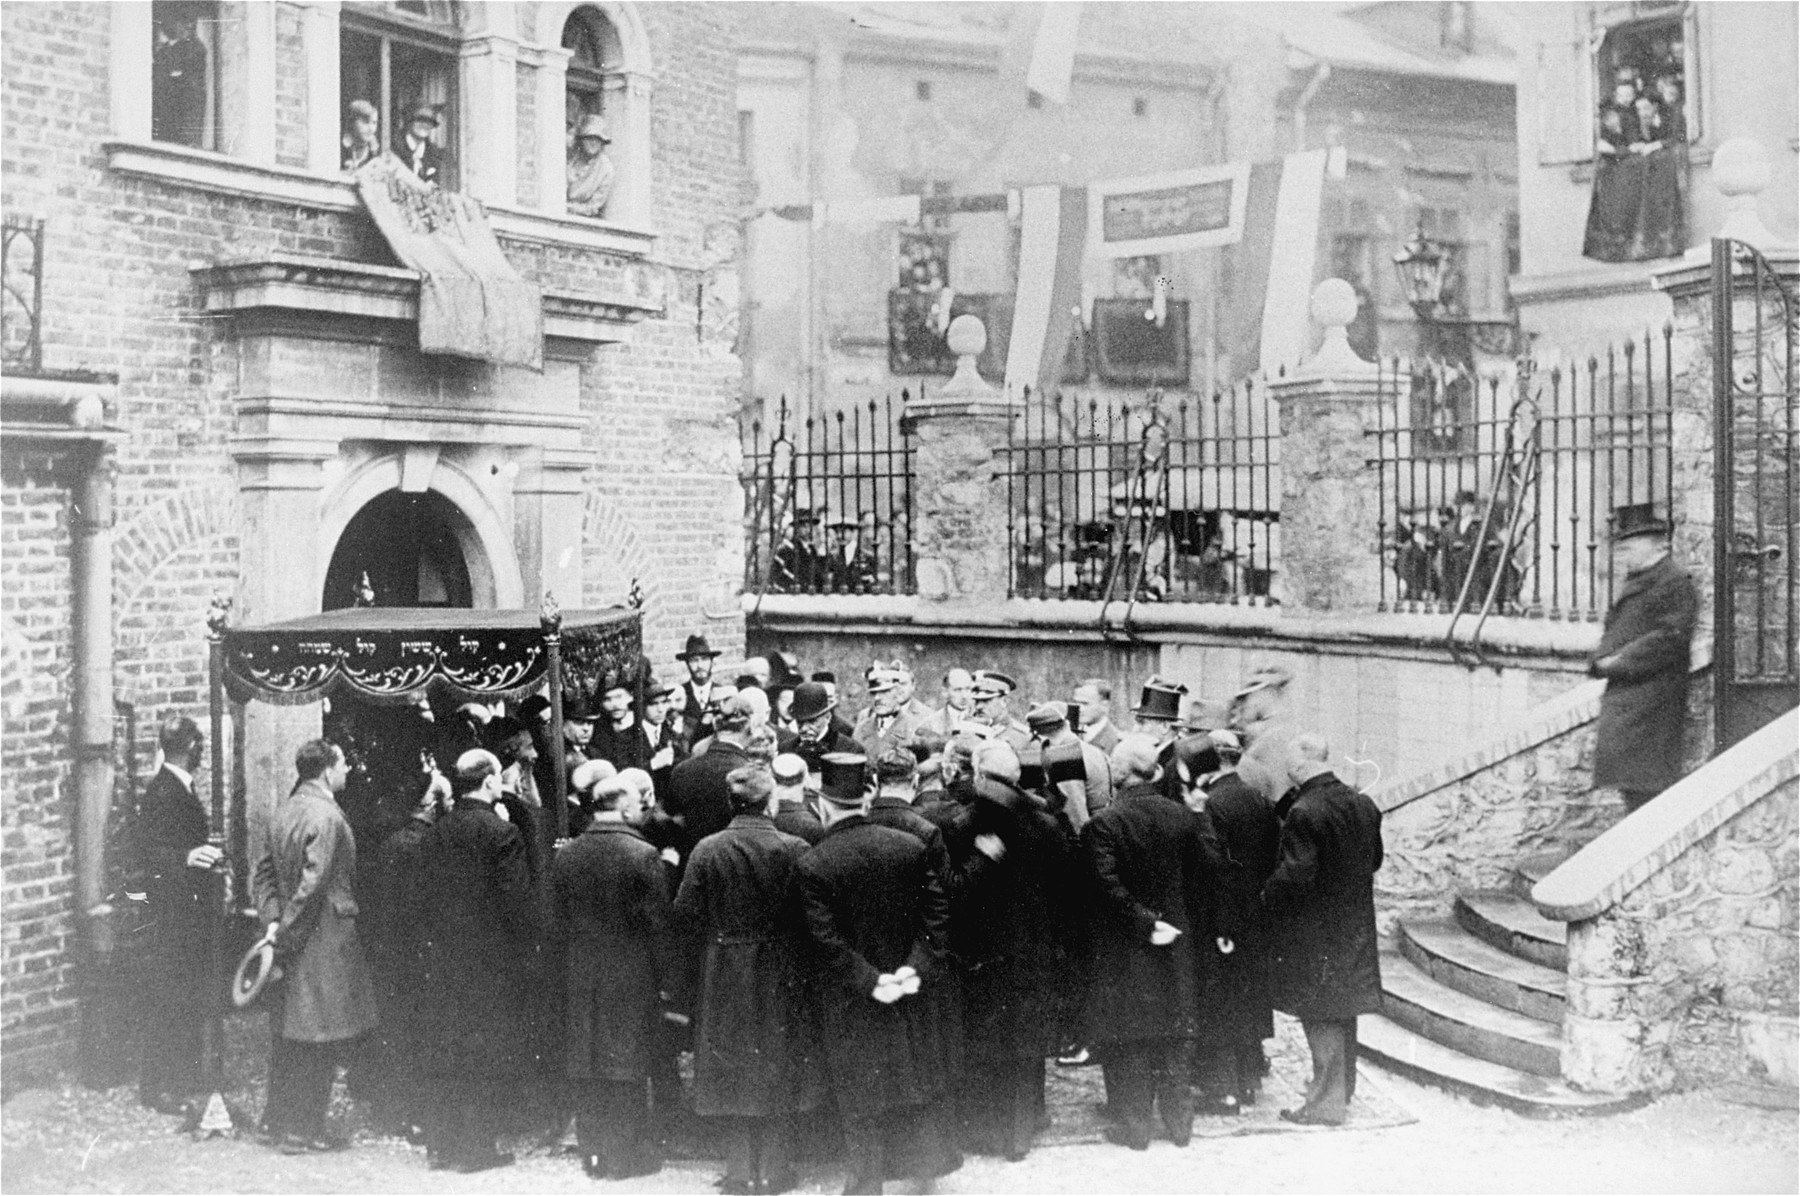 Leaders of the Jewish community greet General Jozef Pilsudski in the courtyard of a synagogue in Krakow.